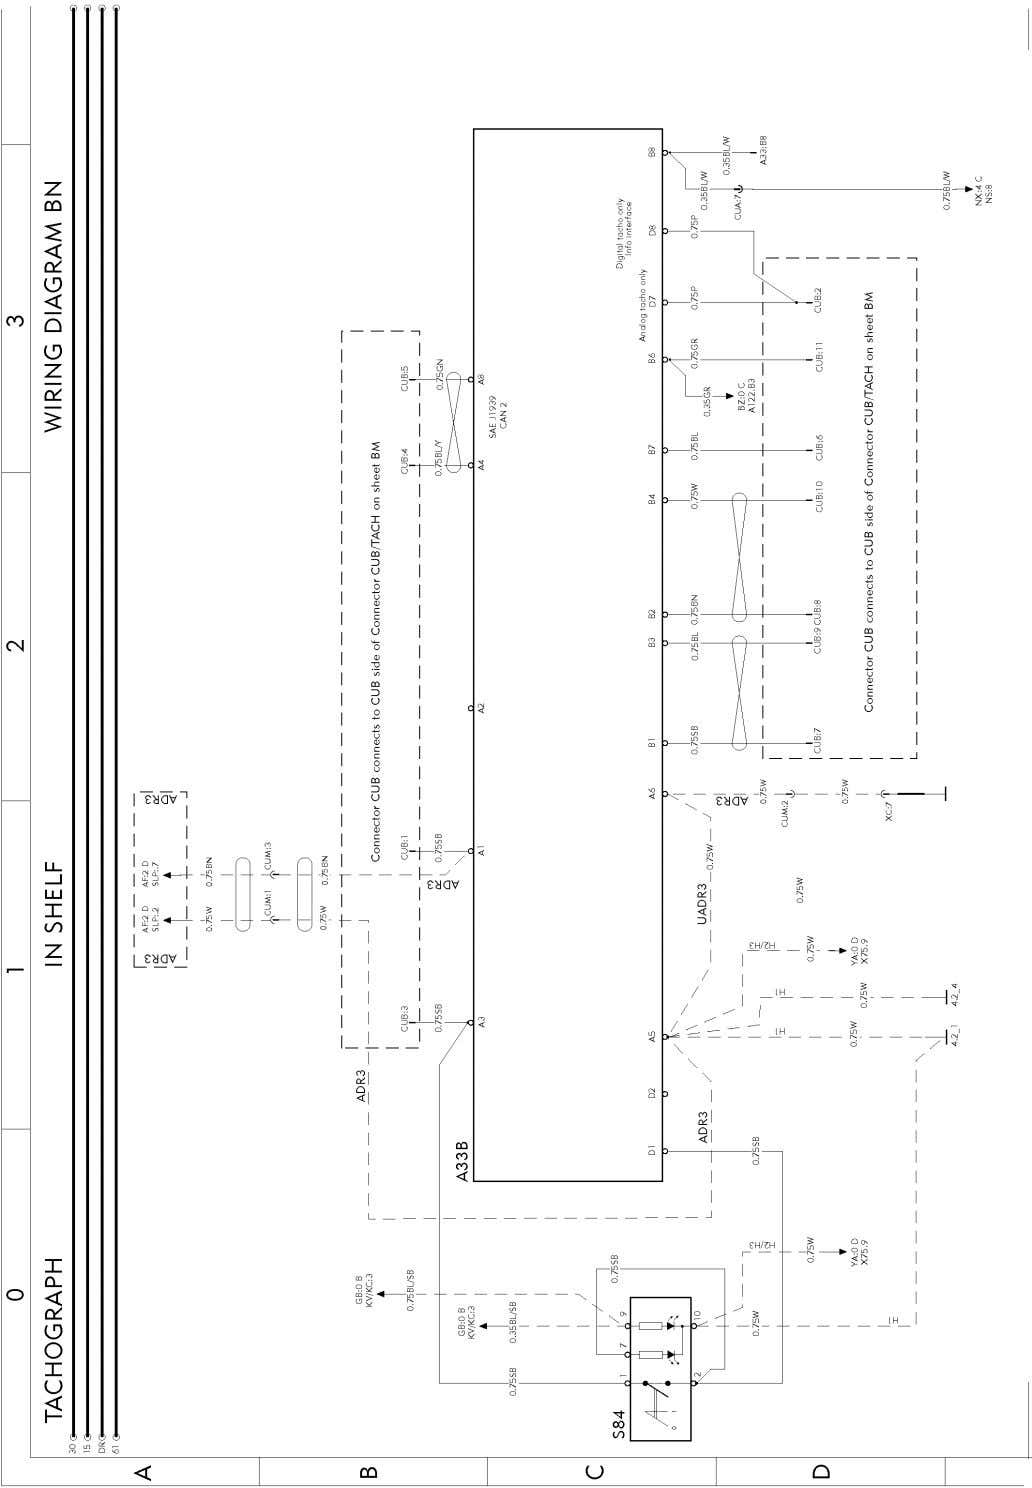 T3022000 Page 16 (298) Wiring diagram